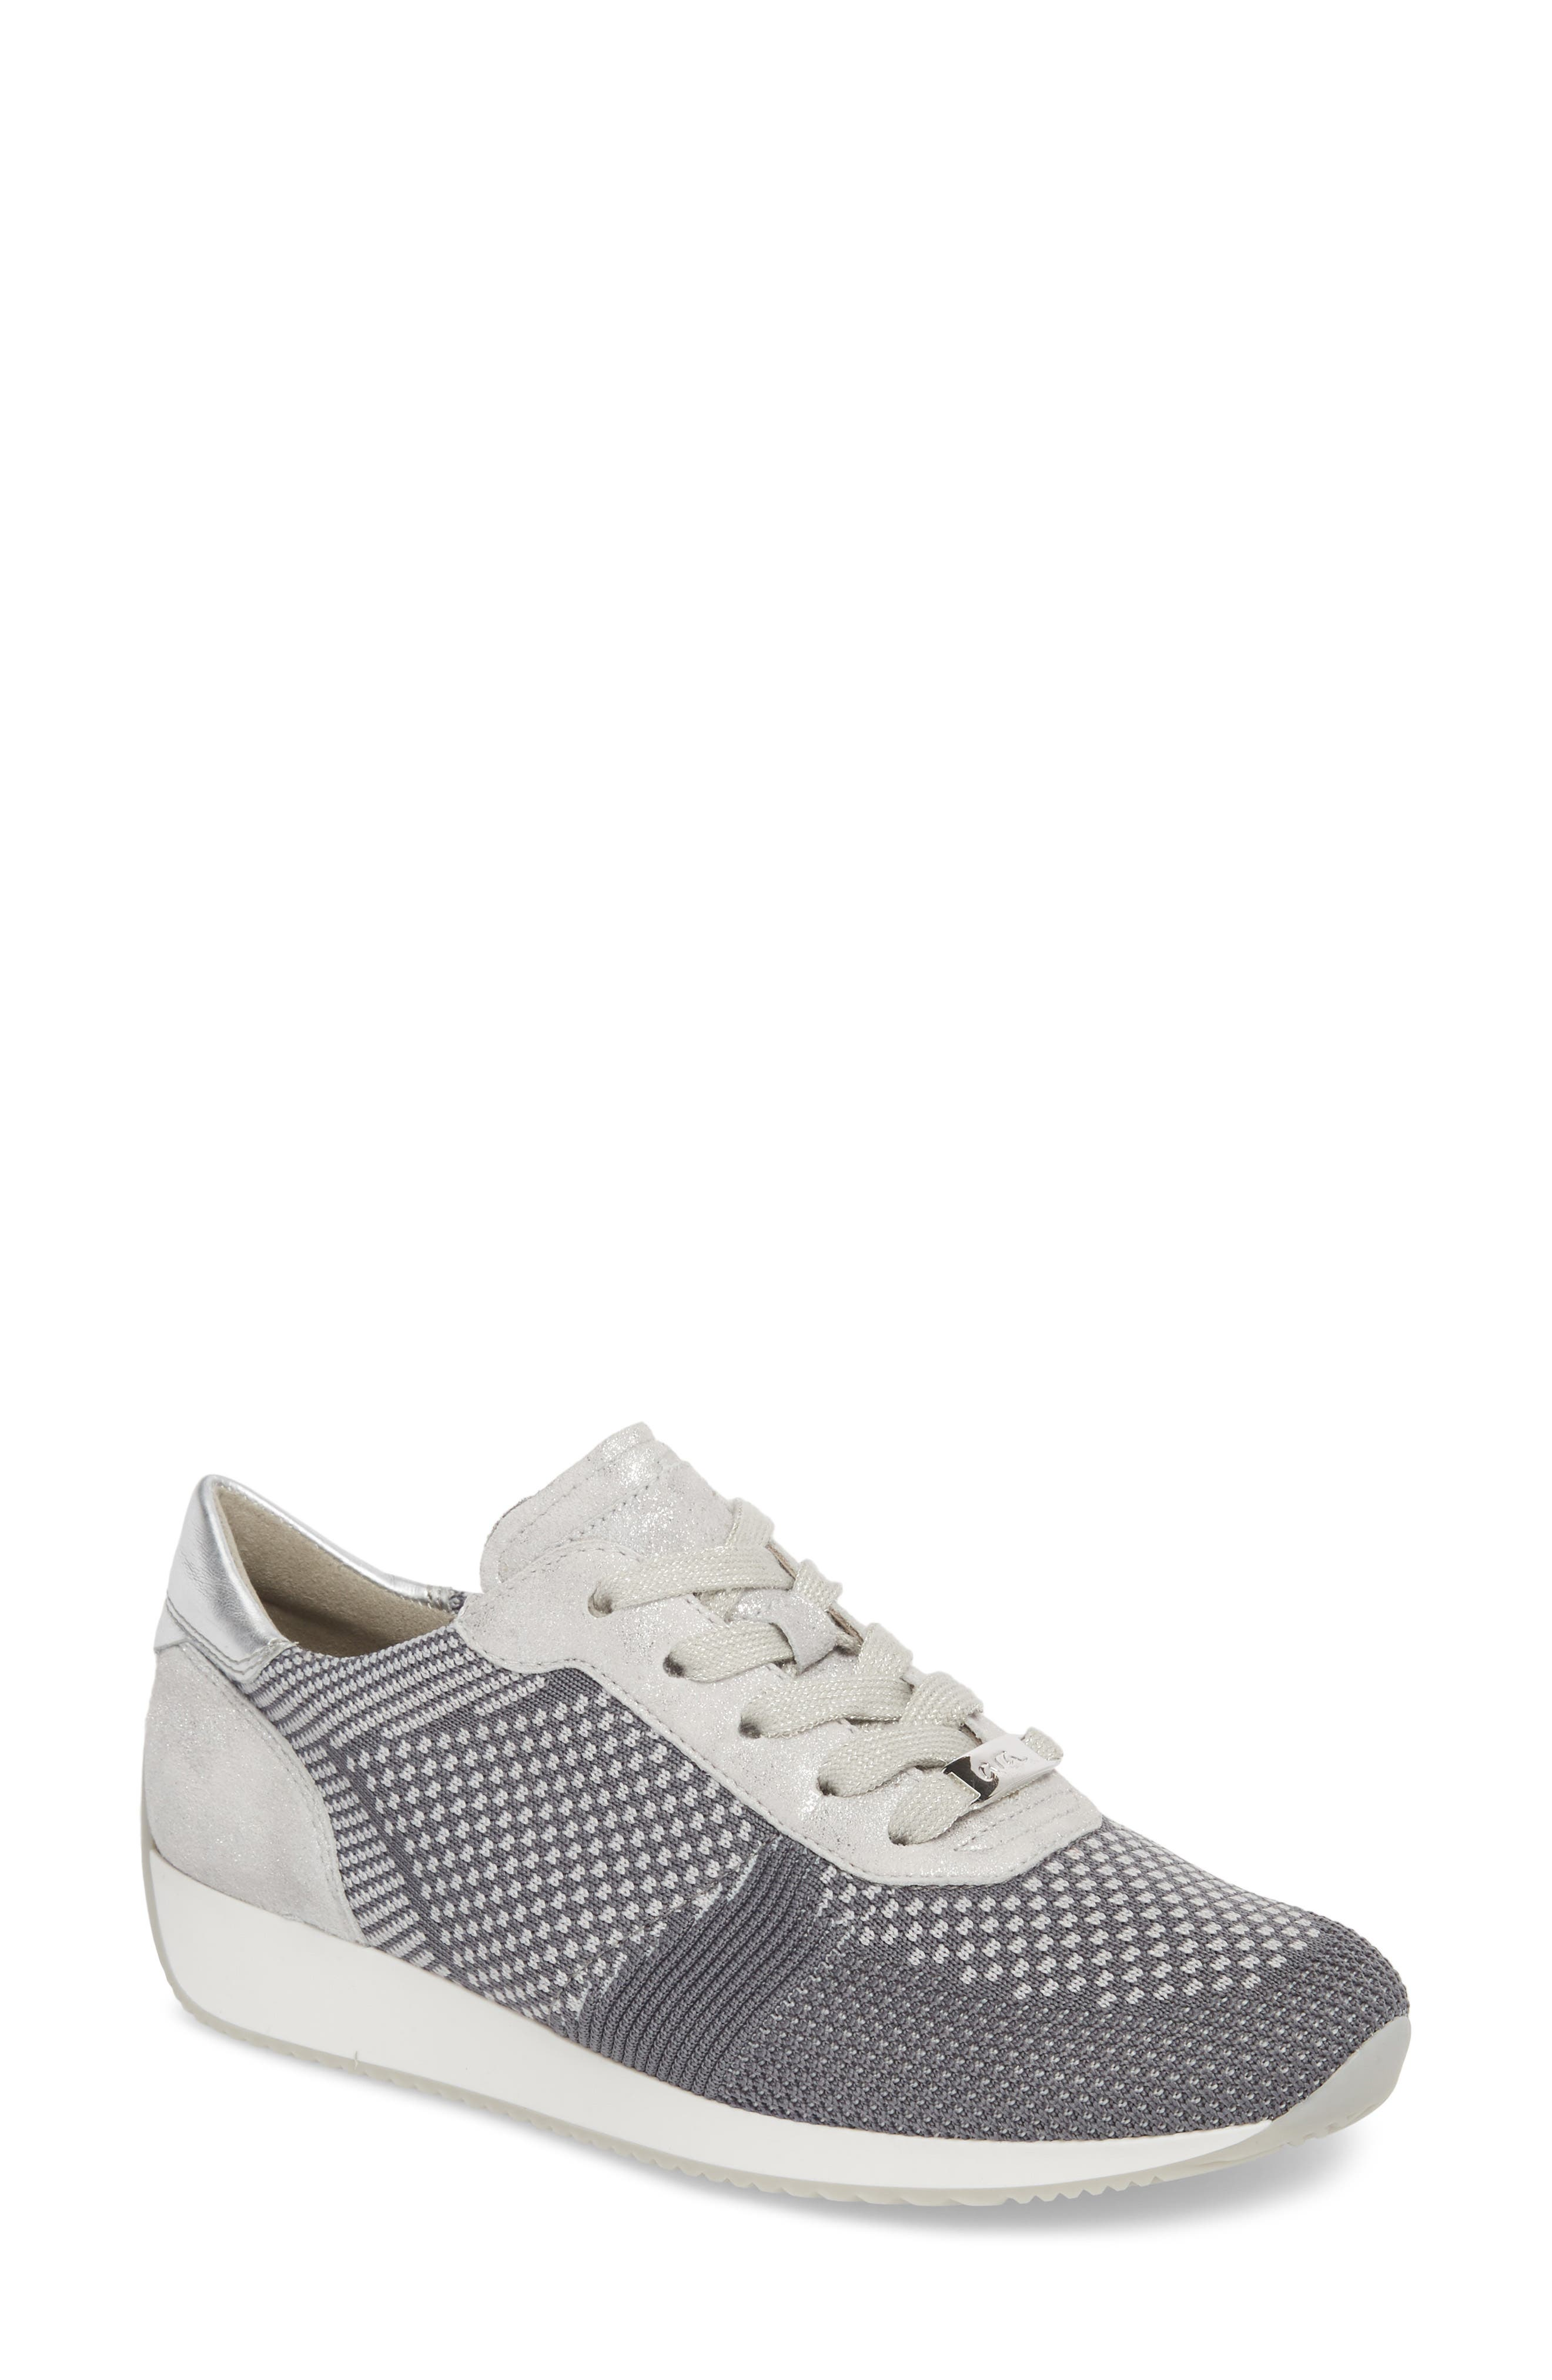 Lilly Sneaker,                             Main thumbnail 1, color,                             Grey Fabric